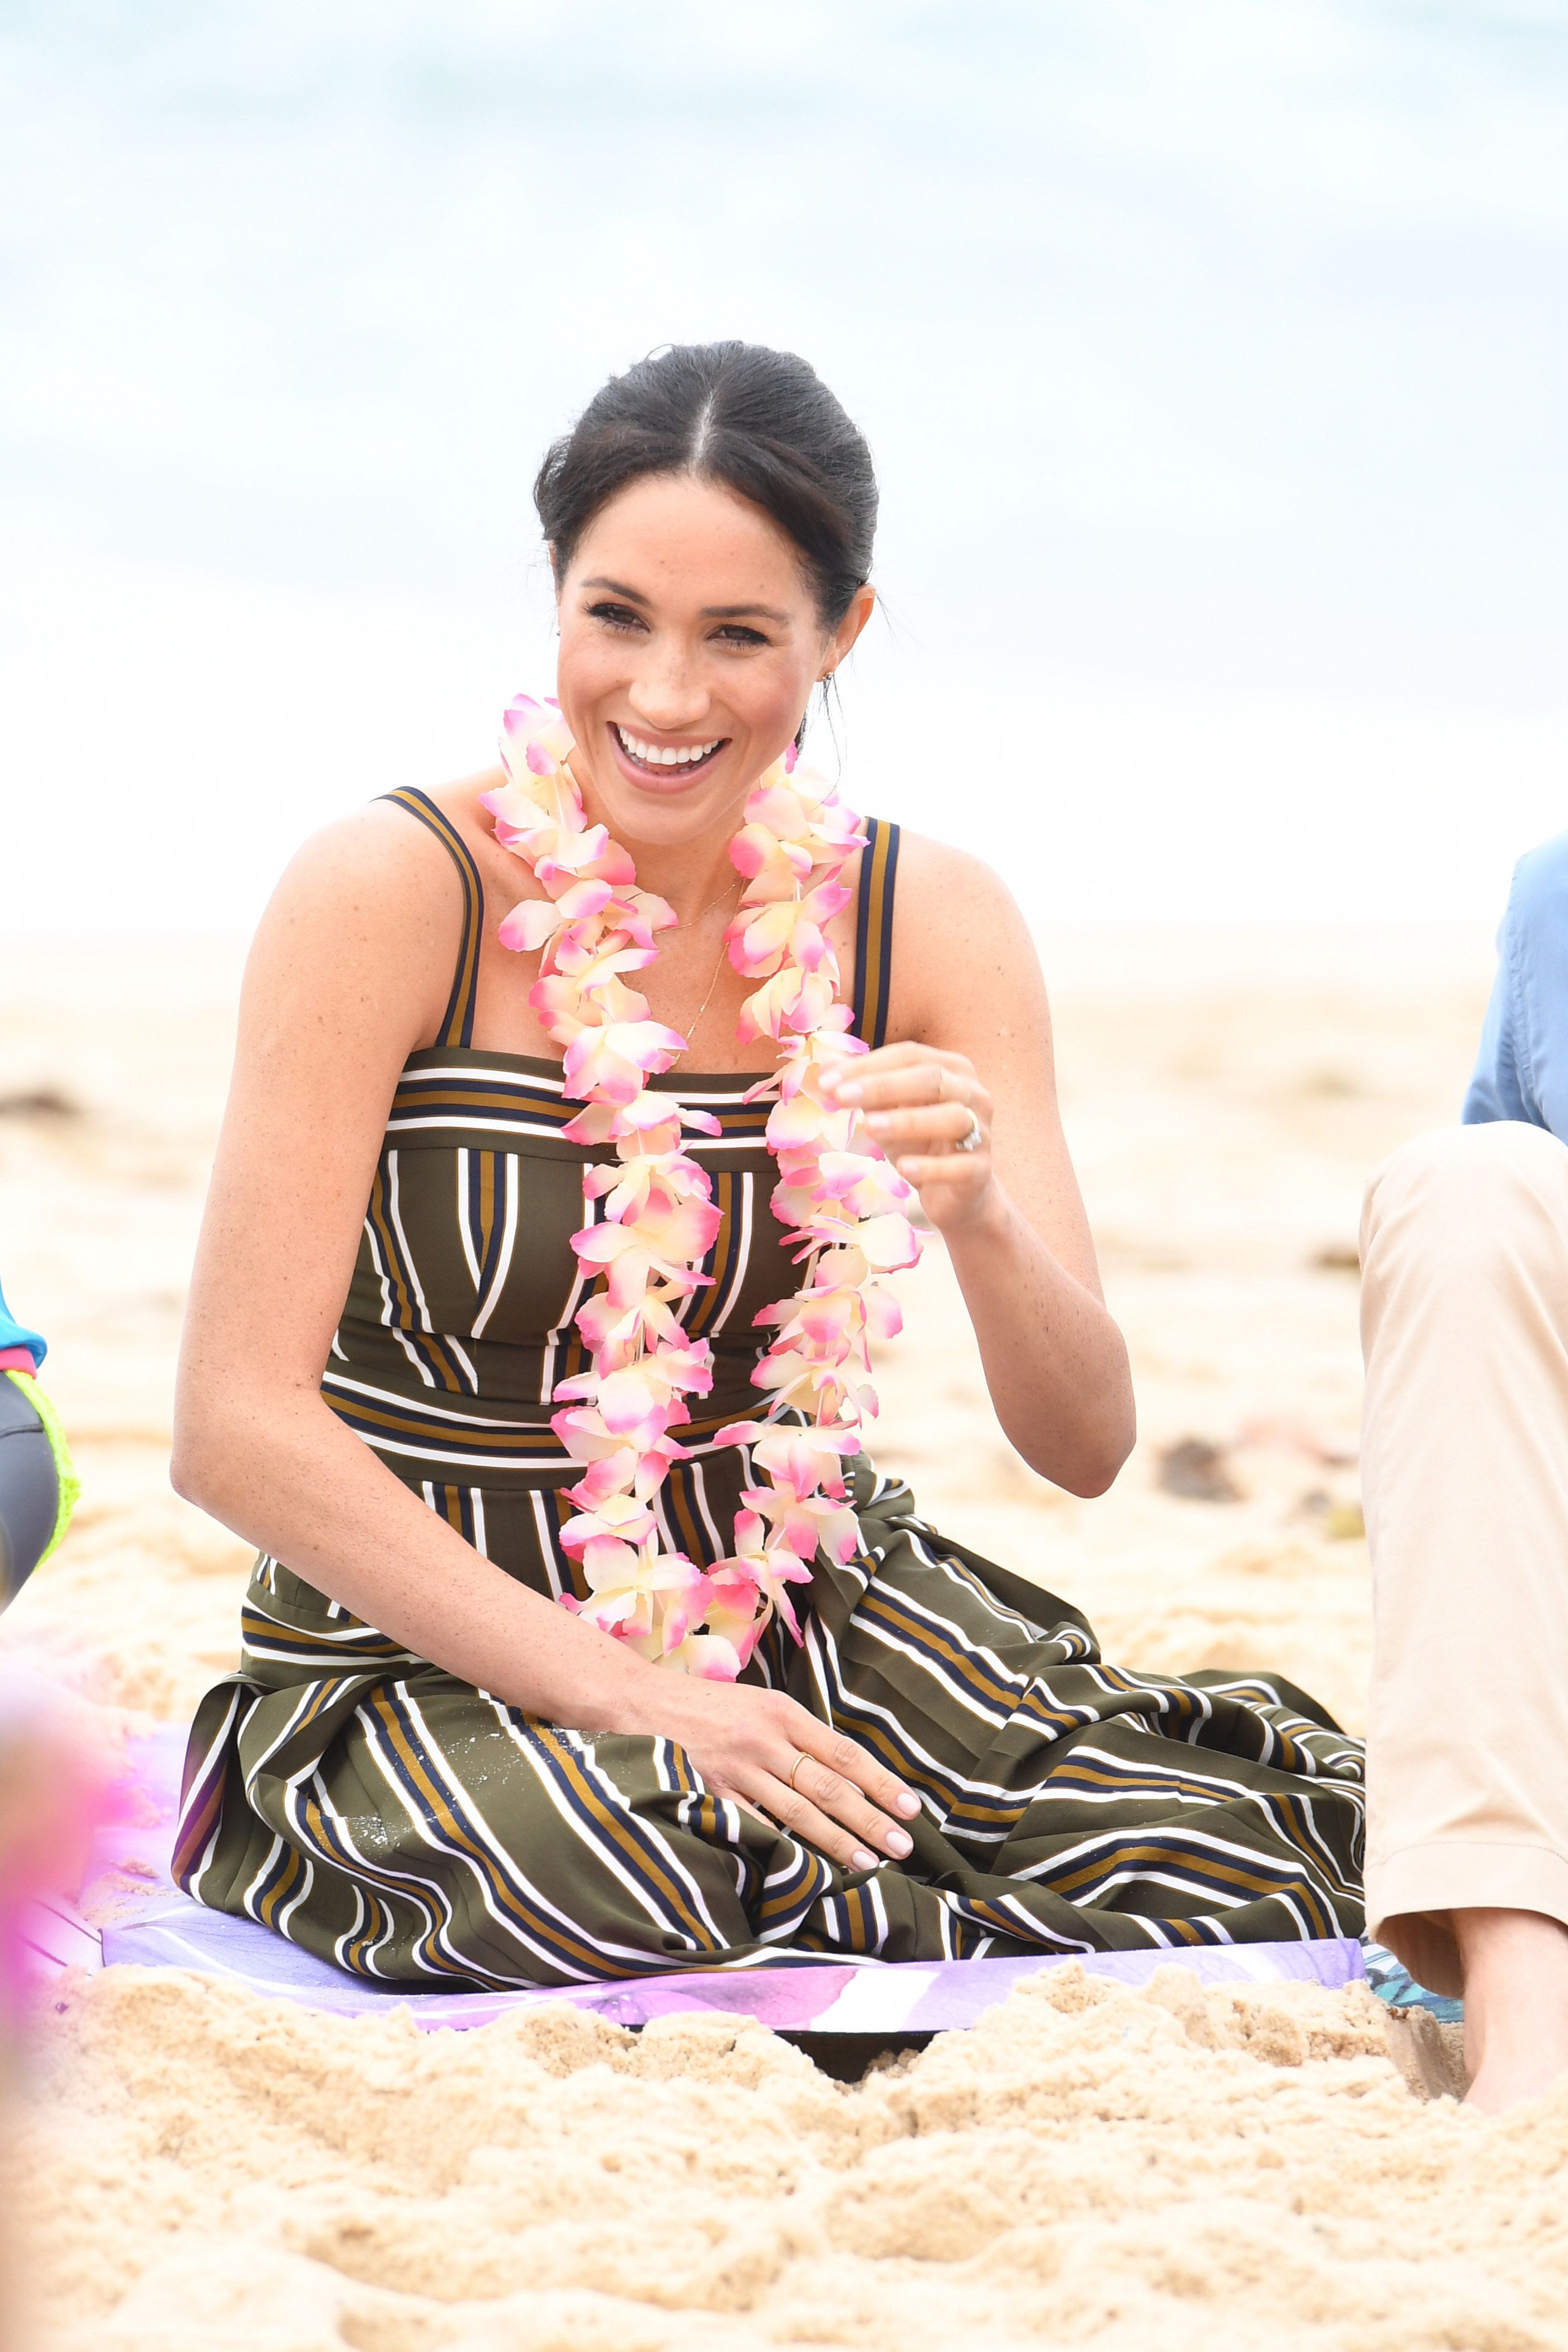 Meghan Markle Opens Up About Her Pregnancy So